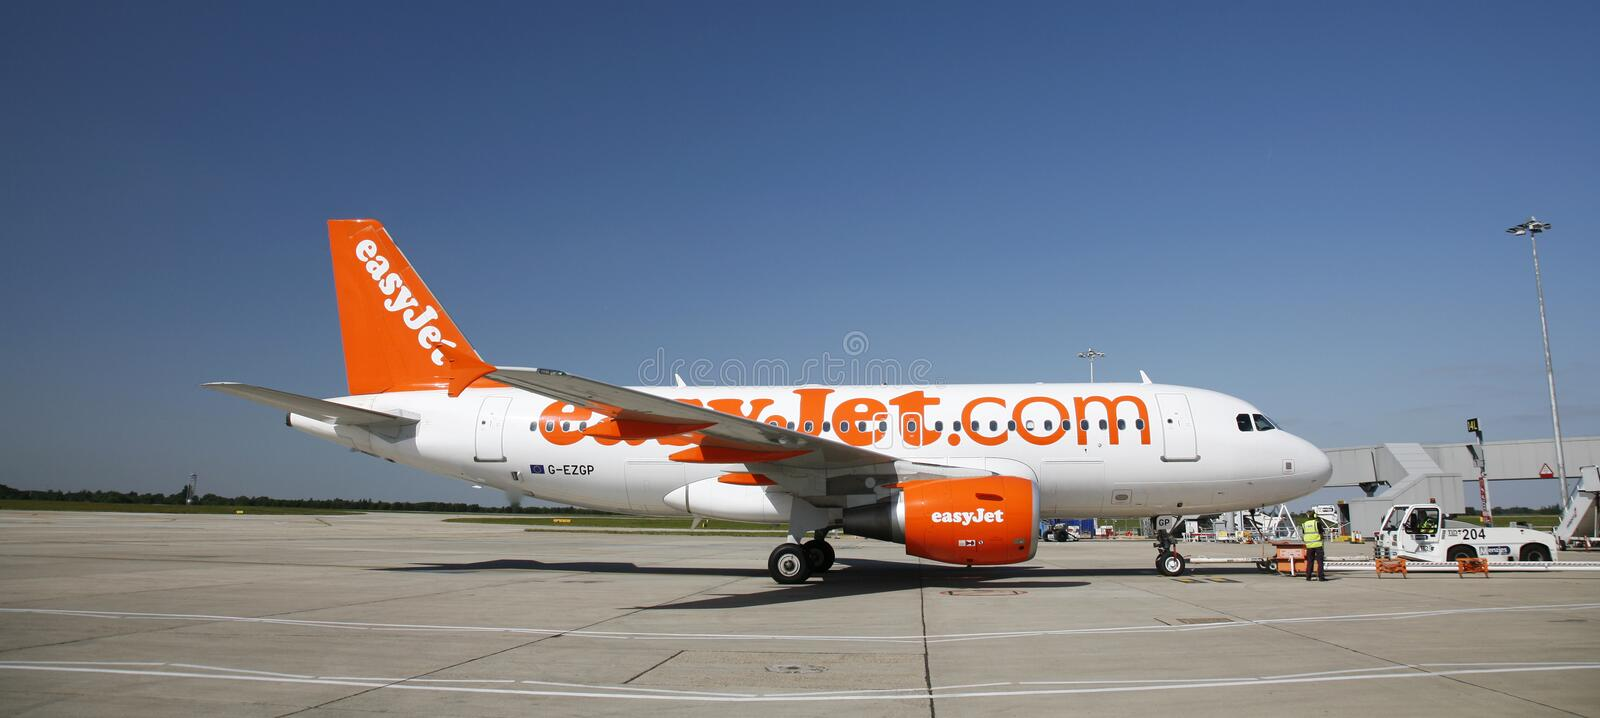 EasyJet Airbus A319 photographie stock